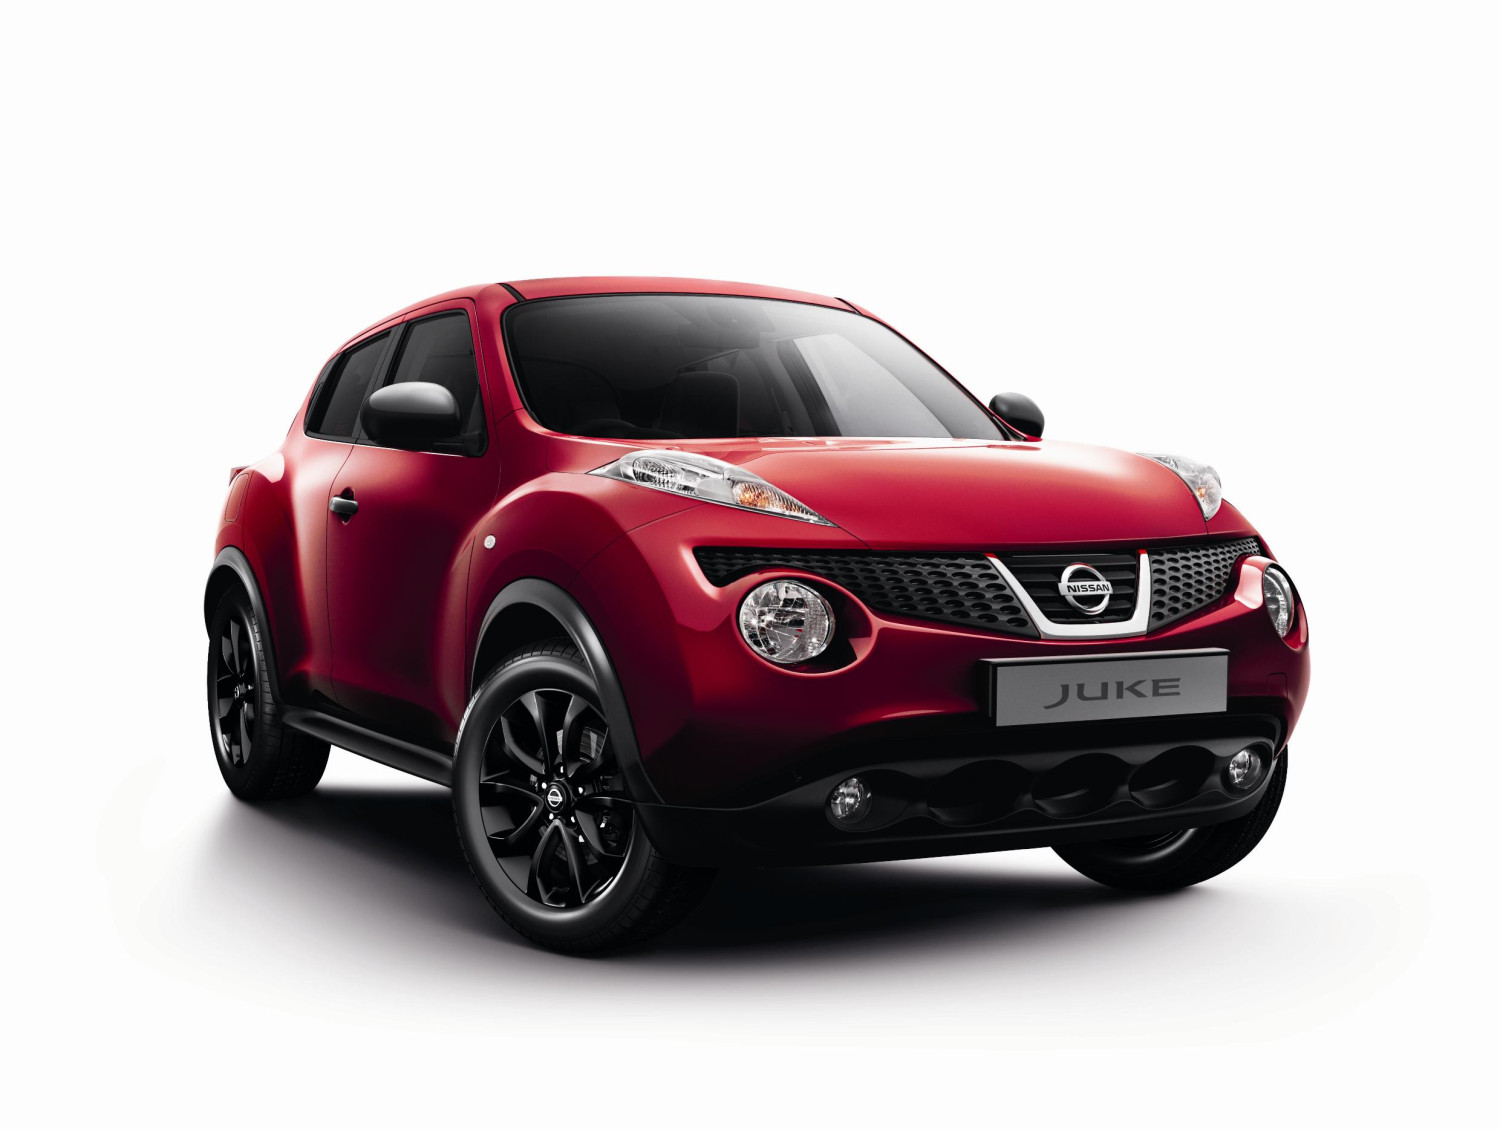 kuro a new version of nissan juke 2013 garage car. Black Bedroom Furniture Sets. Home Design Ideas